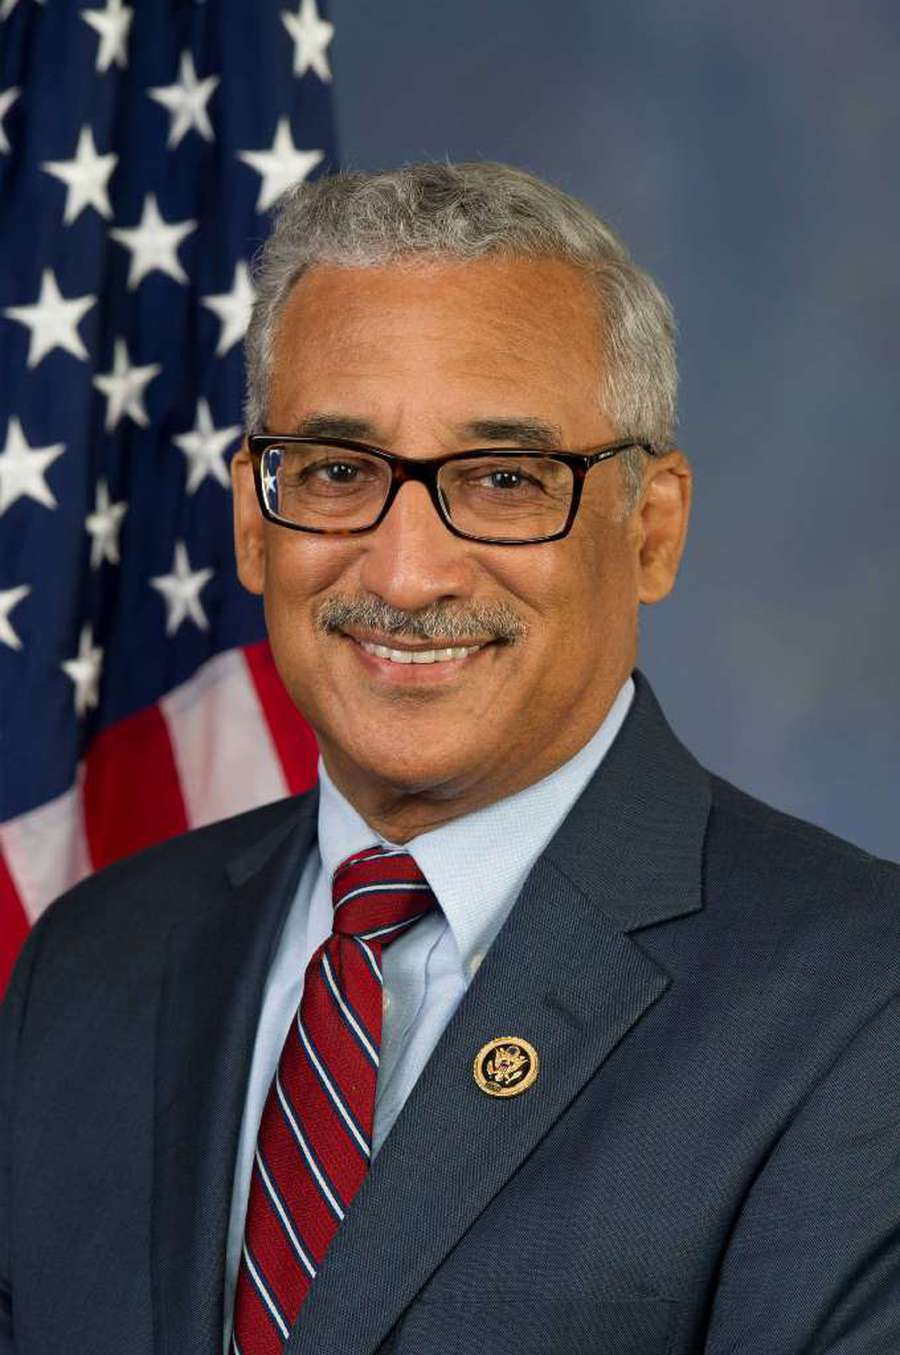 U.S. Rep. Bobby Scott has twice authored legislation to keep data on in-custody deaths.